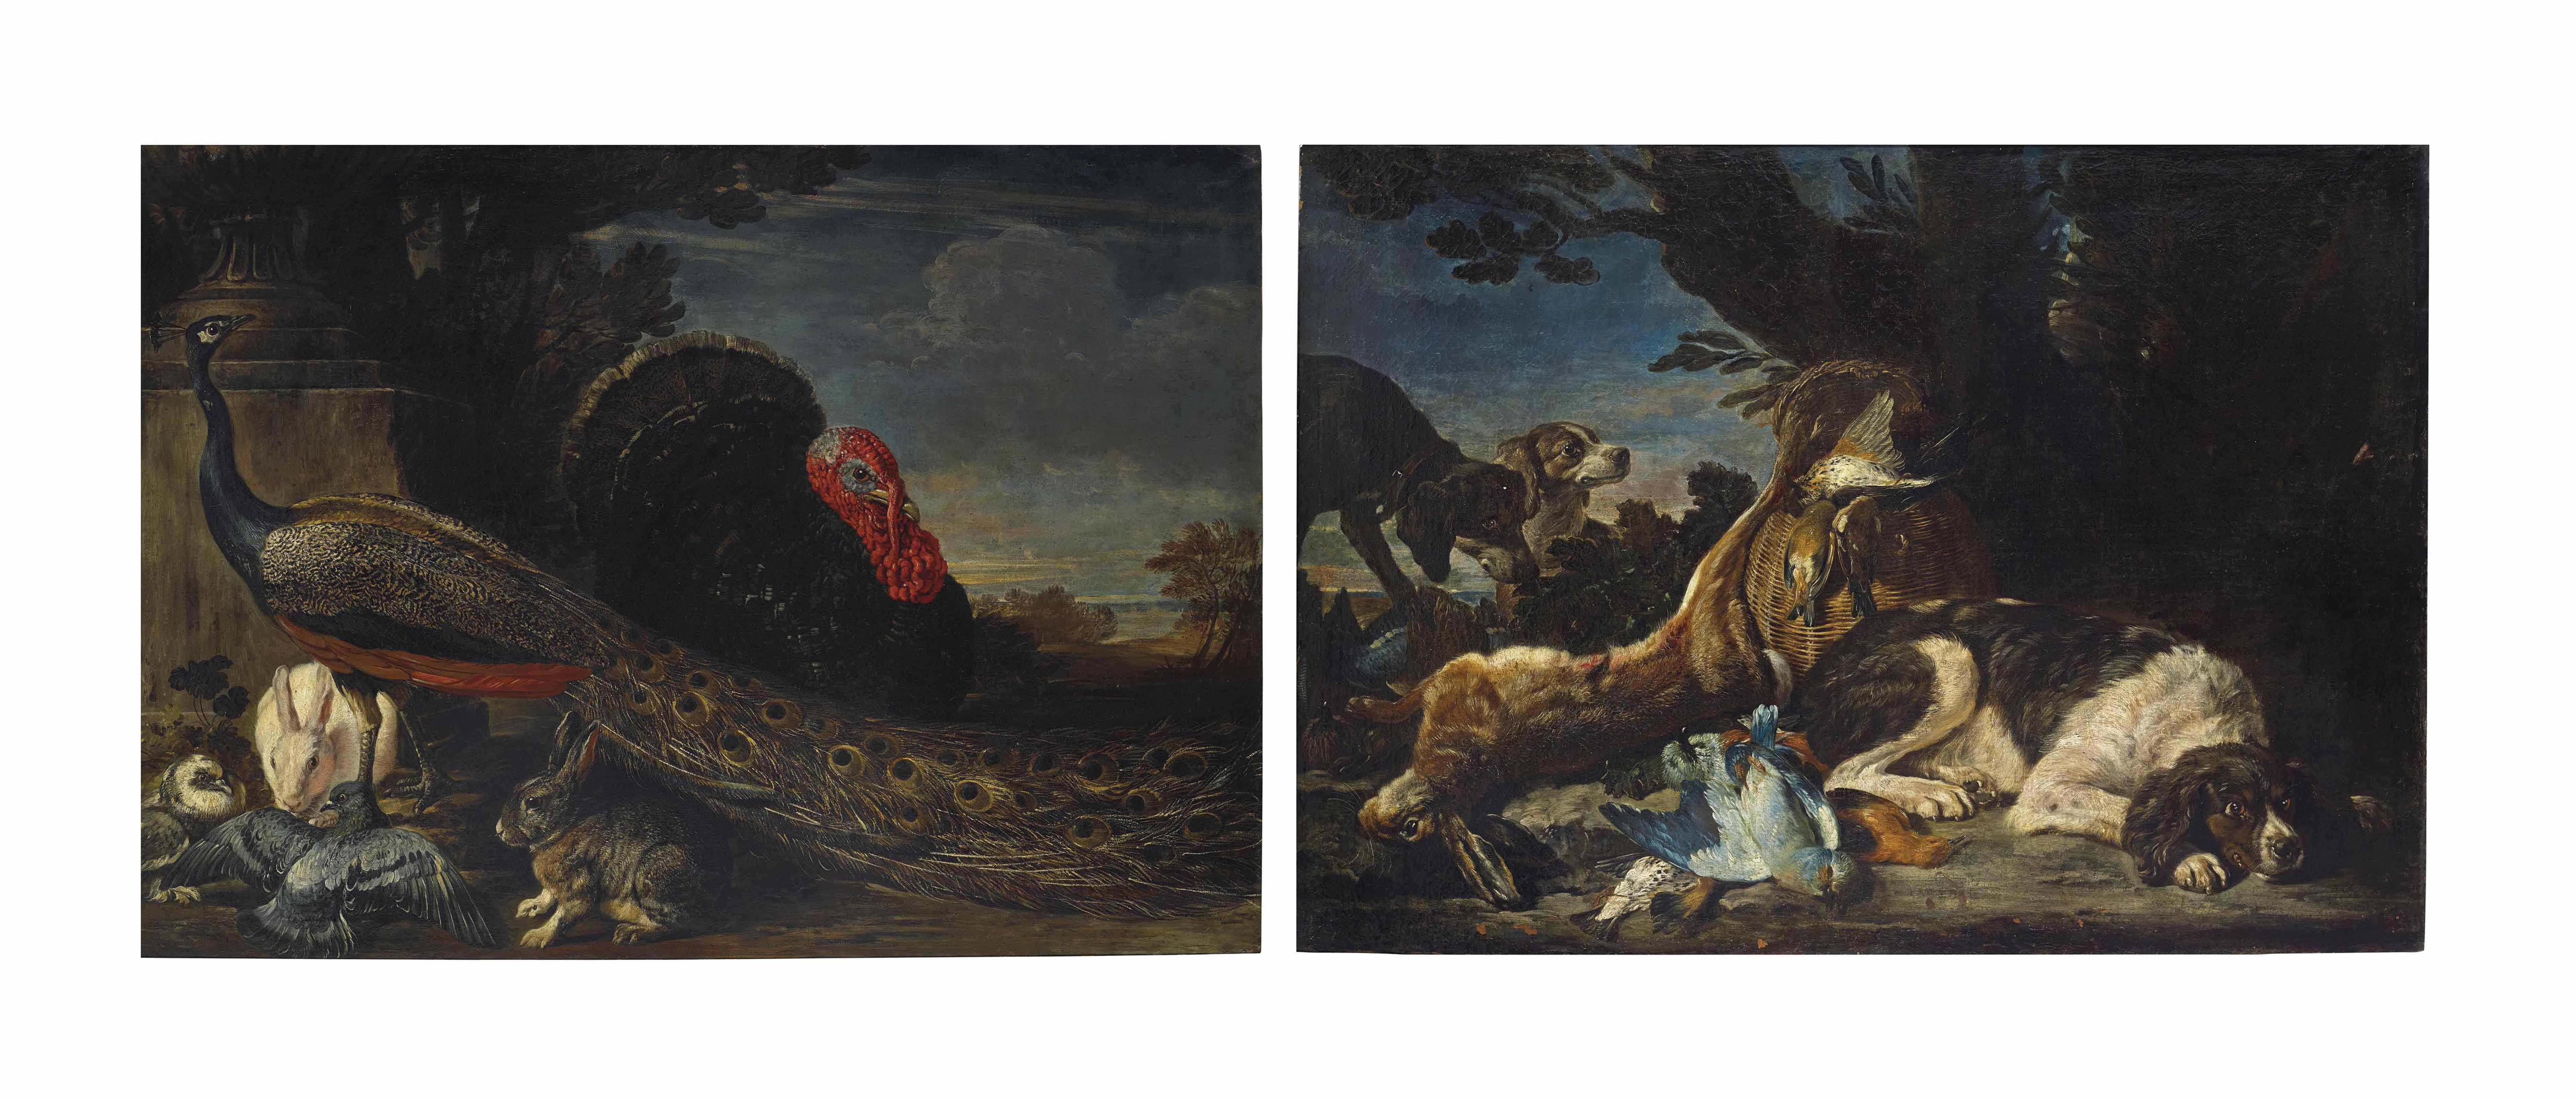 A peacock, wild turkey, hares, and pigeons in a garden, a landscape beyond; and A hare and game birds with three dogs, a landscape beyond